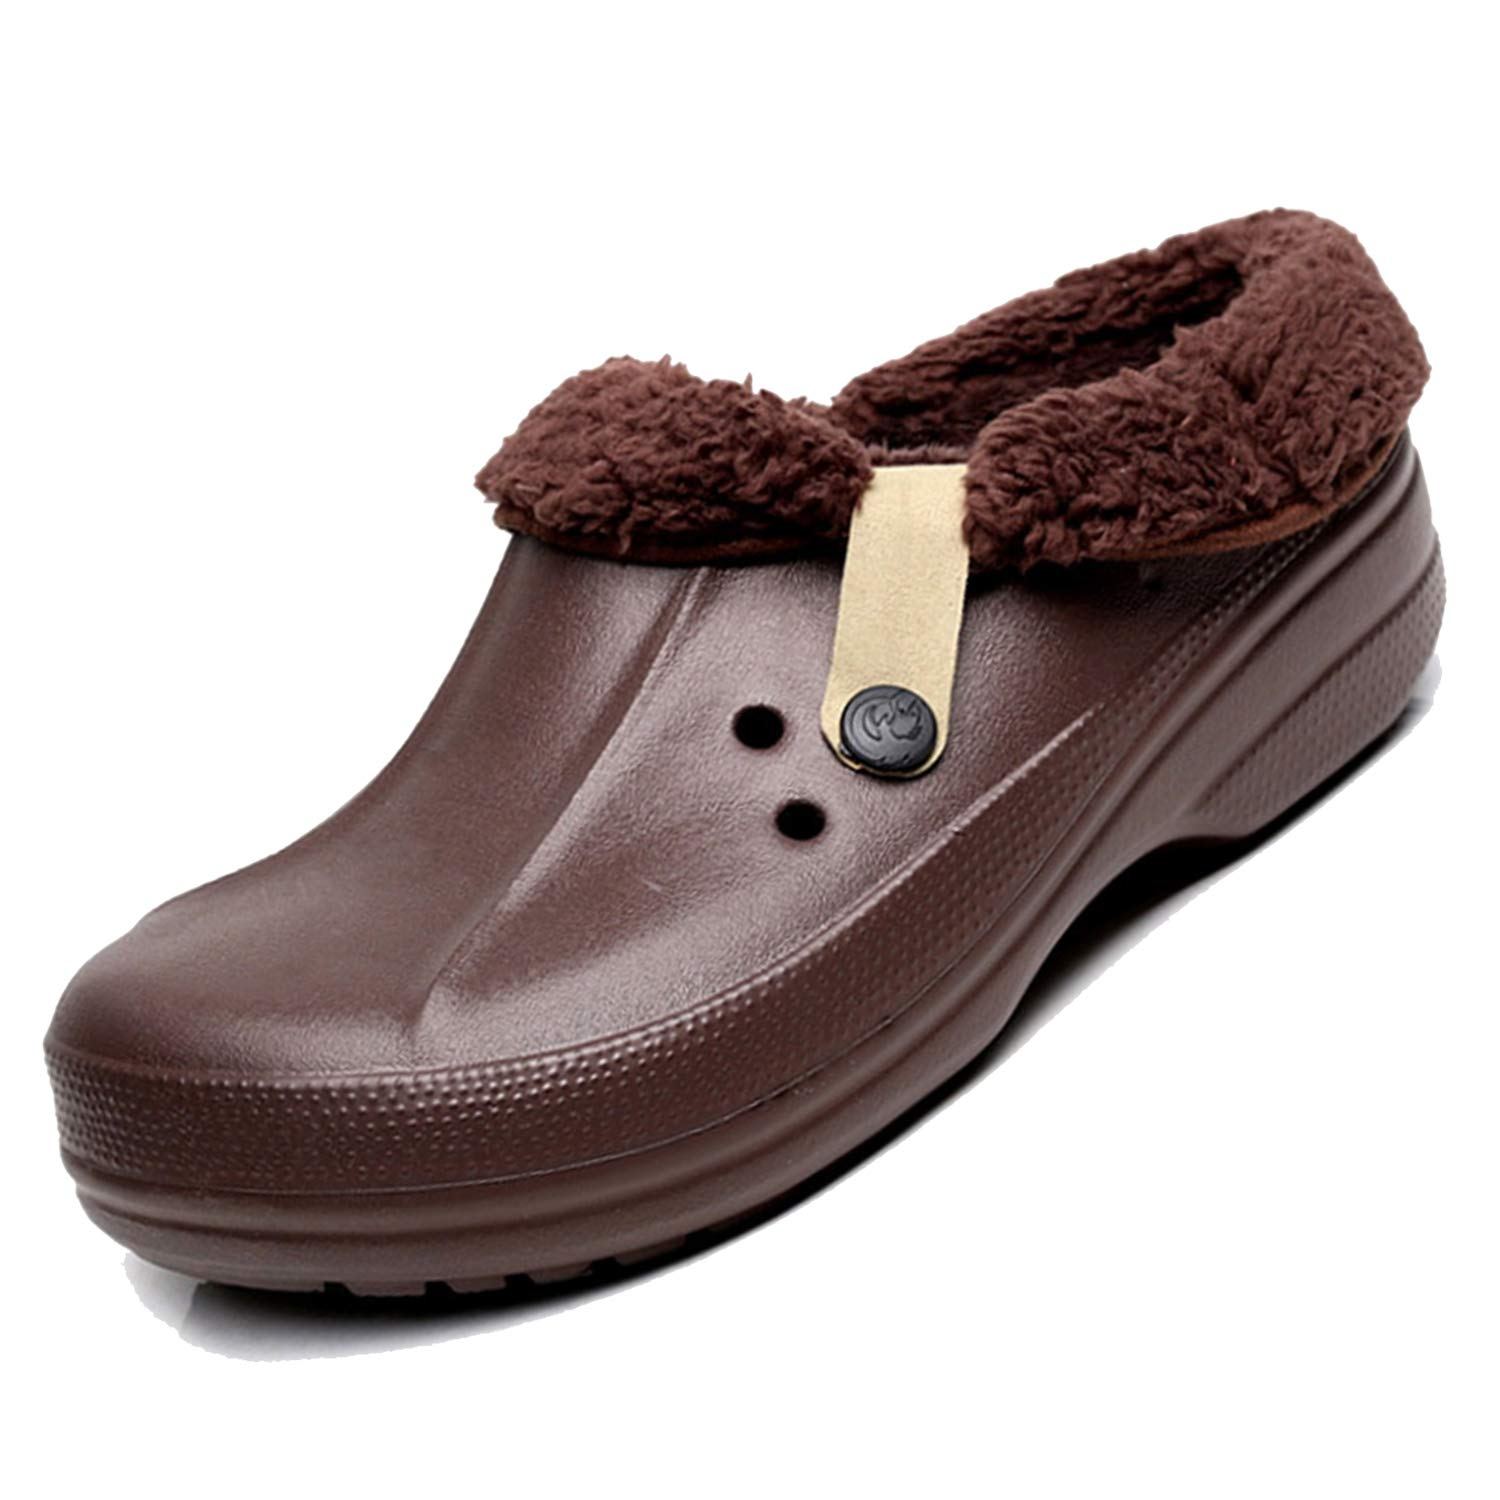 BARKOR Mens Womens Lined Walking Garden Clogs Slippers Warm Non-Slip Shoes Brown-43